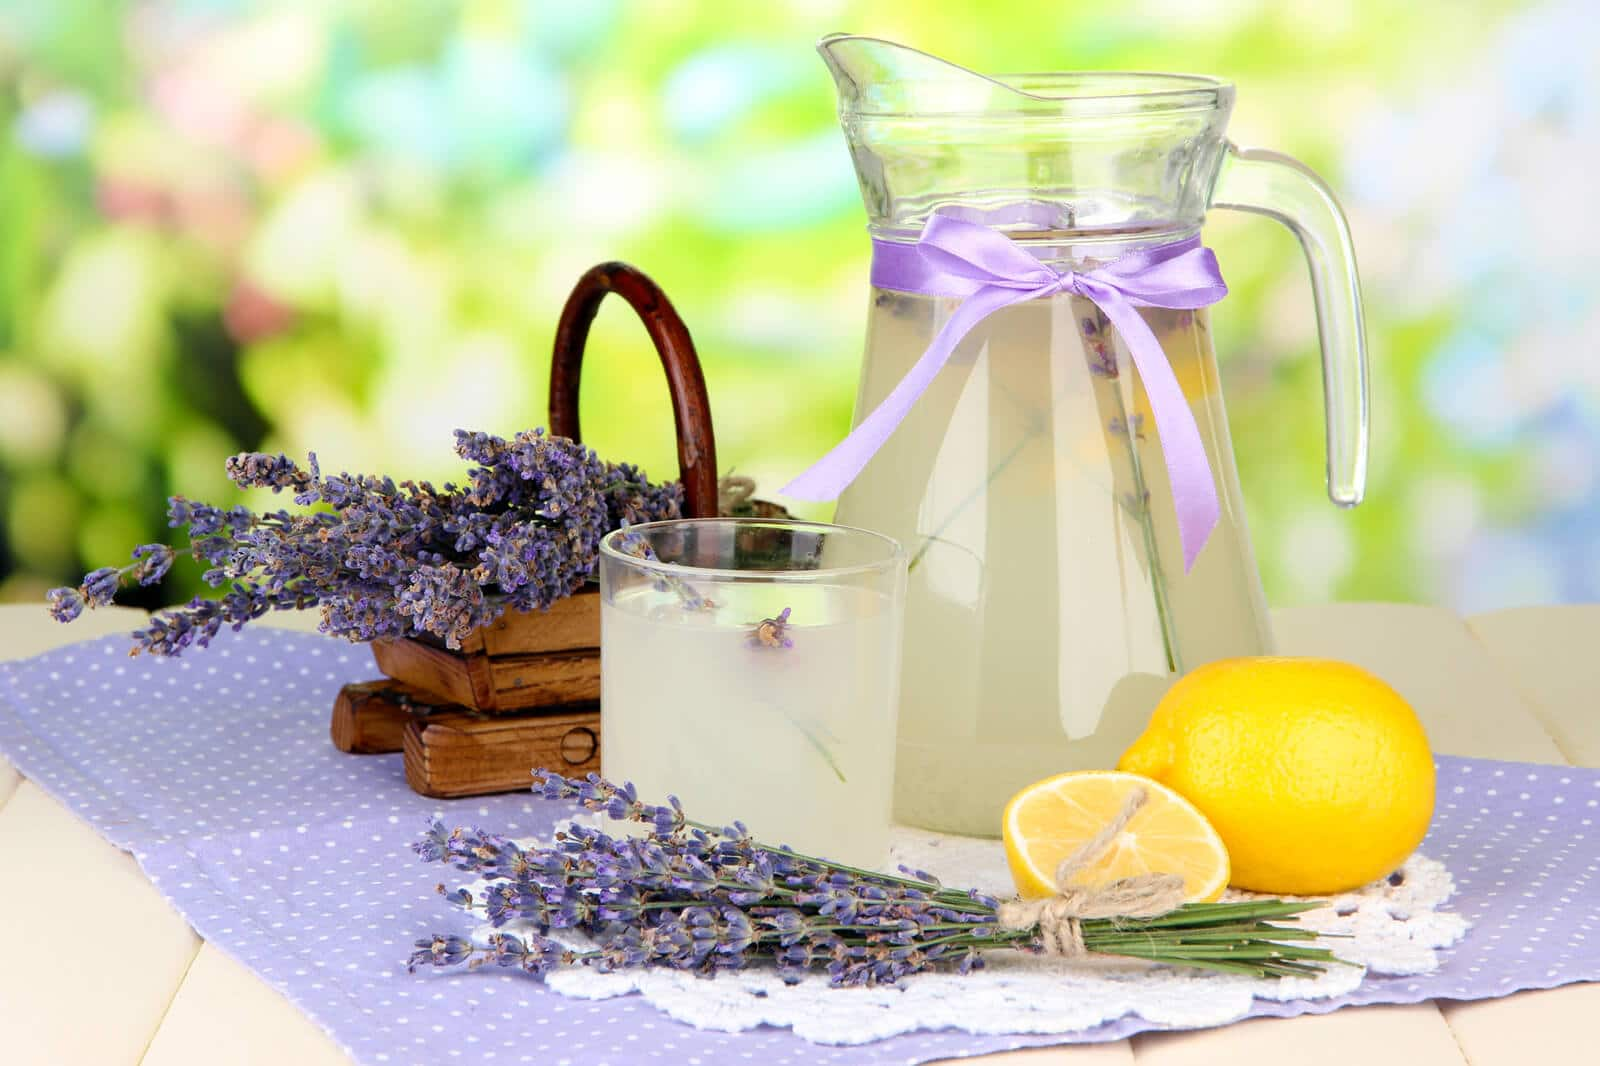 lavender lemonade in a pitcher on a table with lemons and lavender blossoms